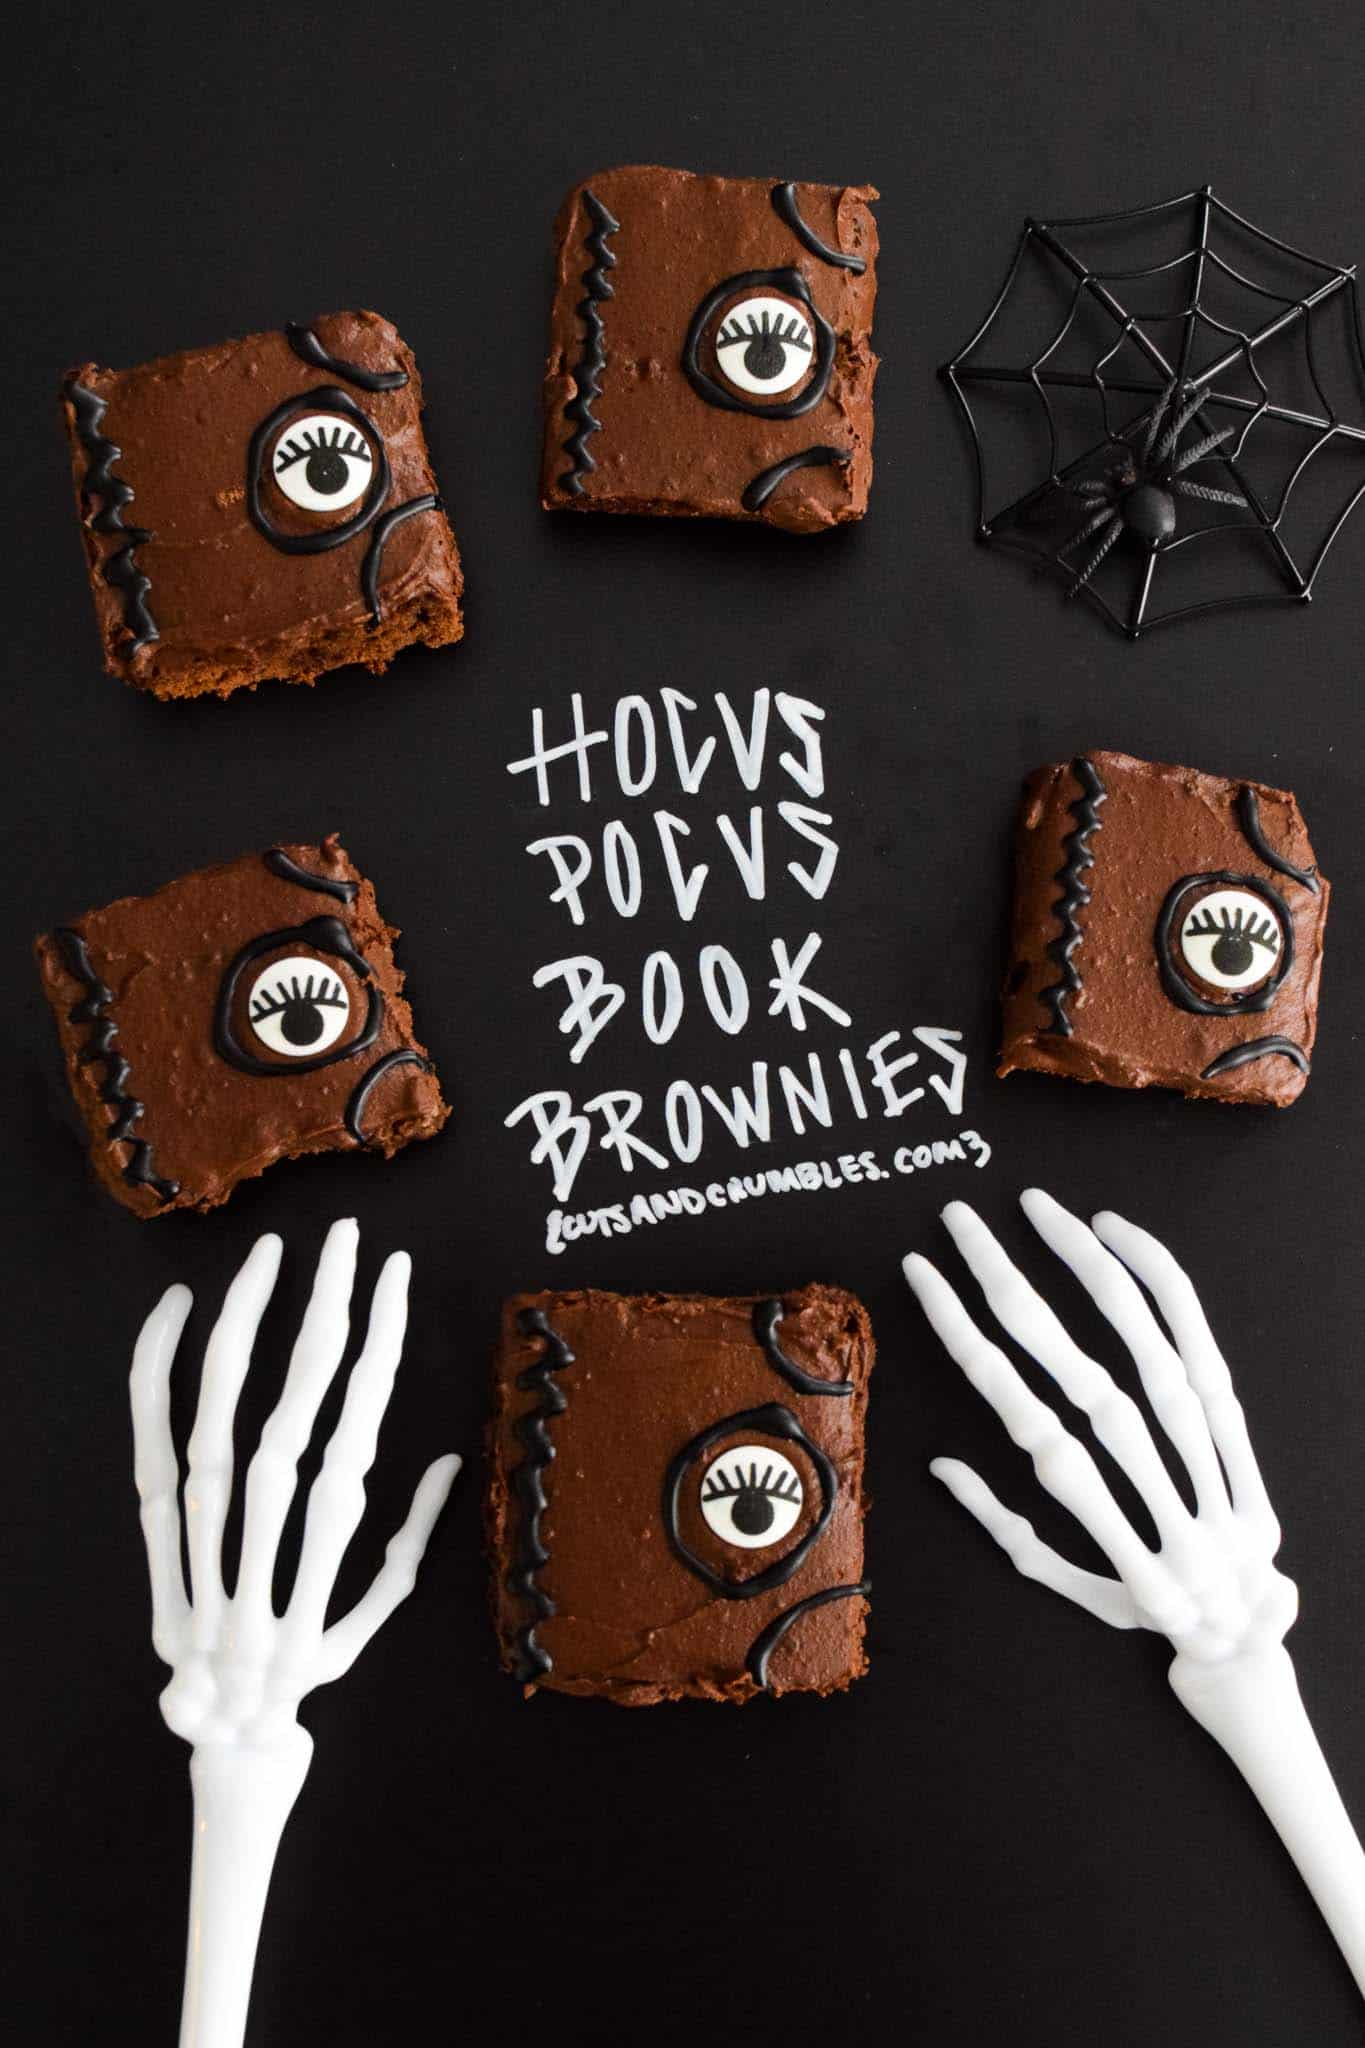 Hocus Pocus Book Brownies with title written on chalkboard and halloween skeleton hands reaching for brownies